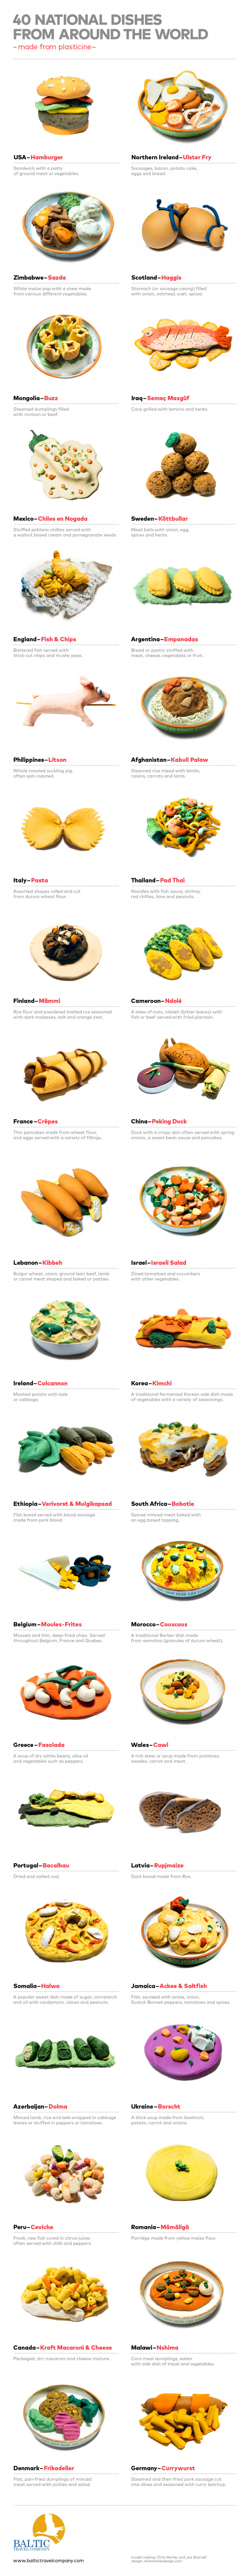 40 National Dishes from Around the World (Made from Plasticine)